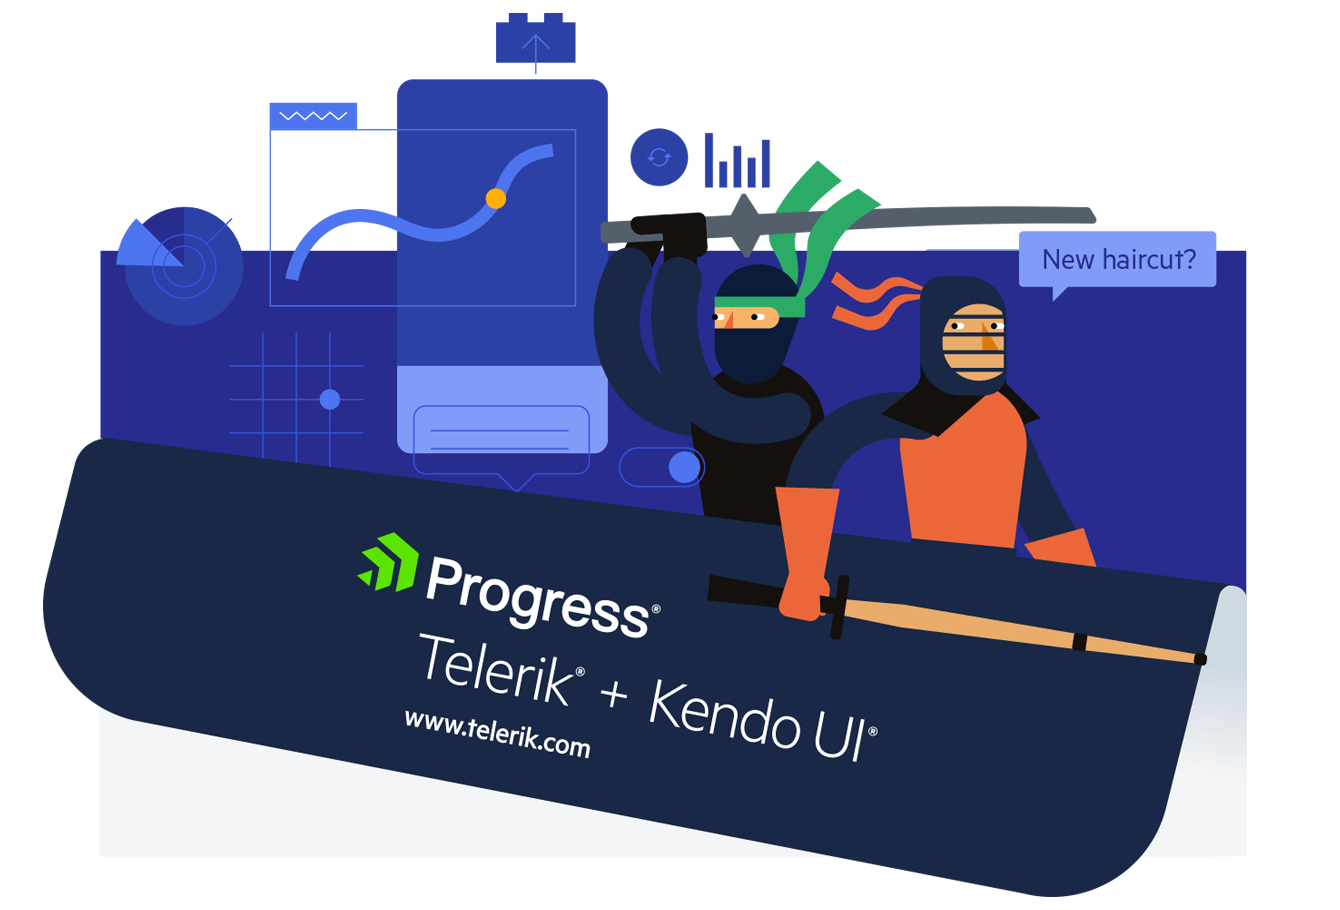 The Telerik Ninja and Kendo UI Kendoka